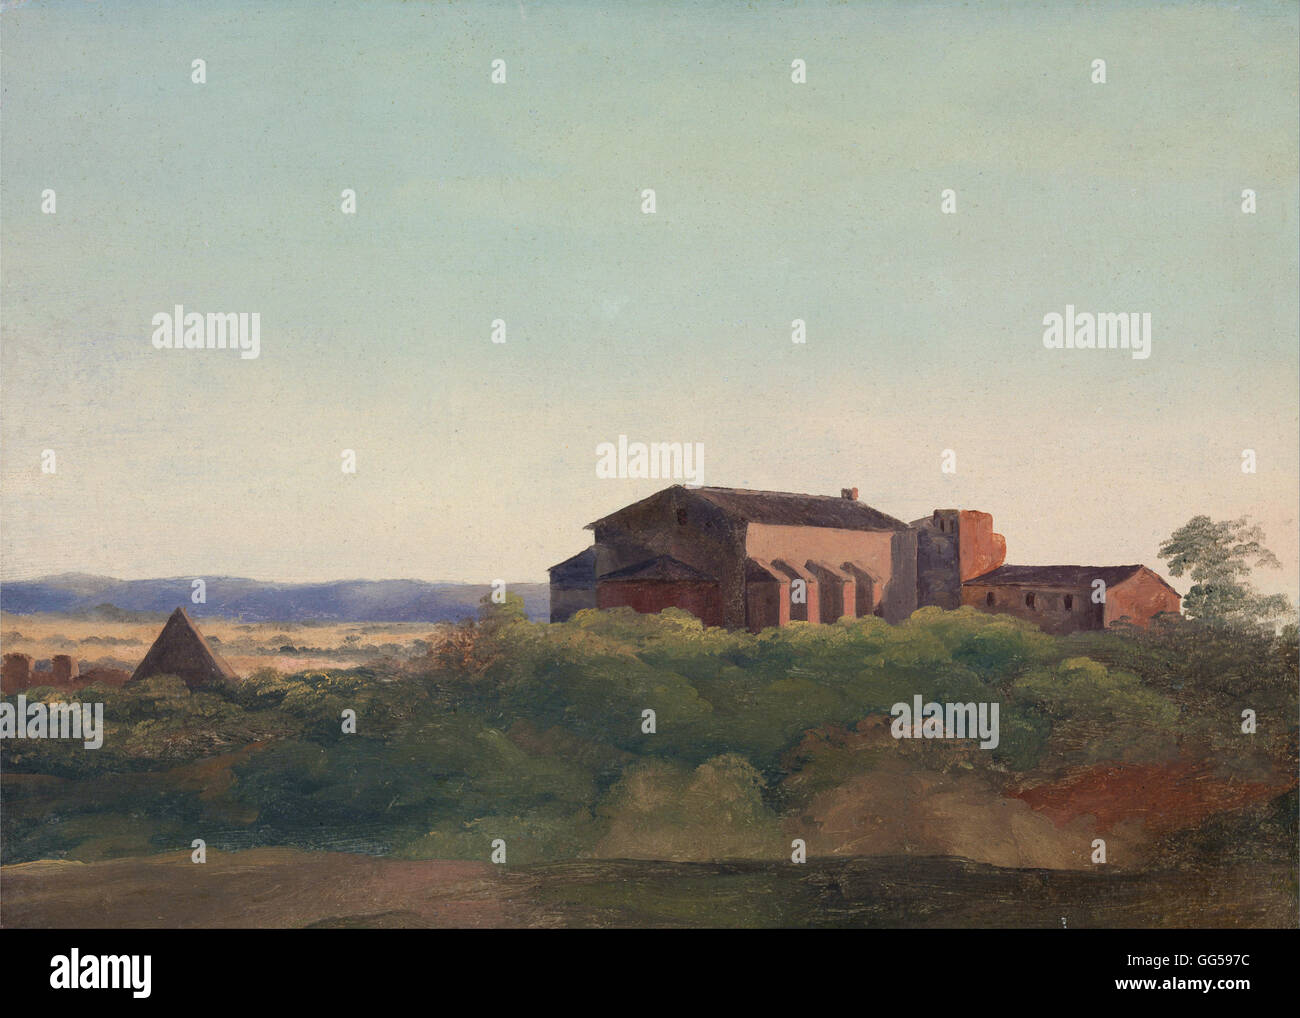 Charles Lock Eastlake - A View of the Church of S. Sabina and the Pyramid of Cestius, Rome - Stock Image